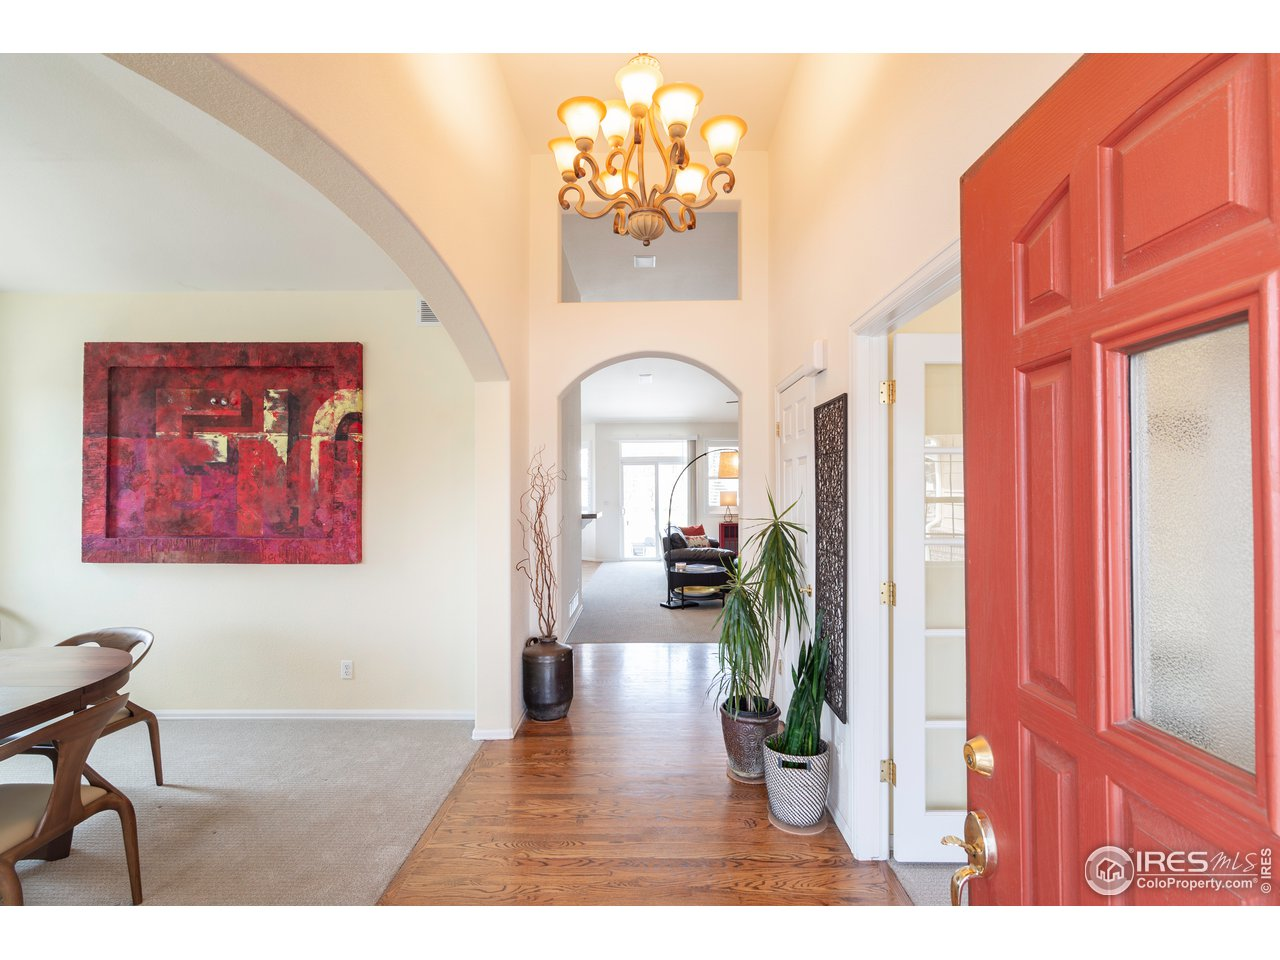 Beautiful high ceilings and gorgeous hardwood floors in the entryway